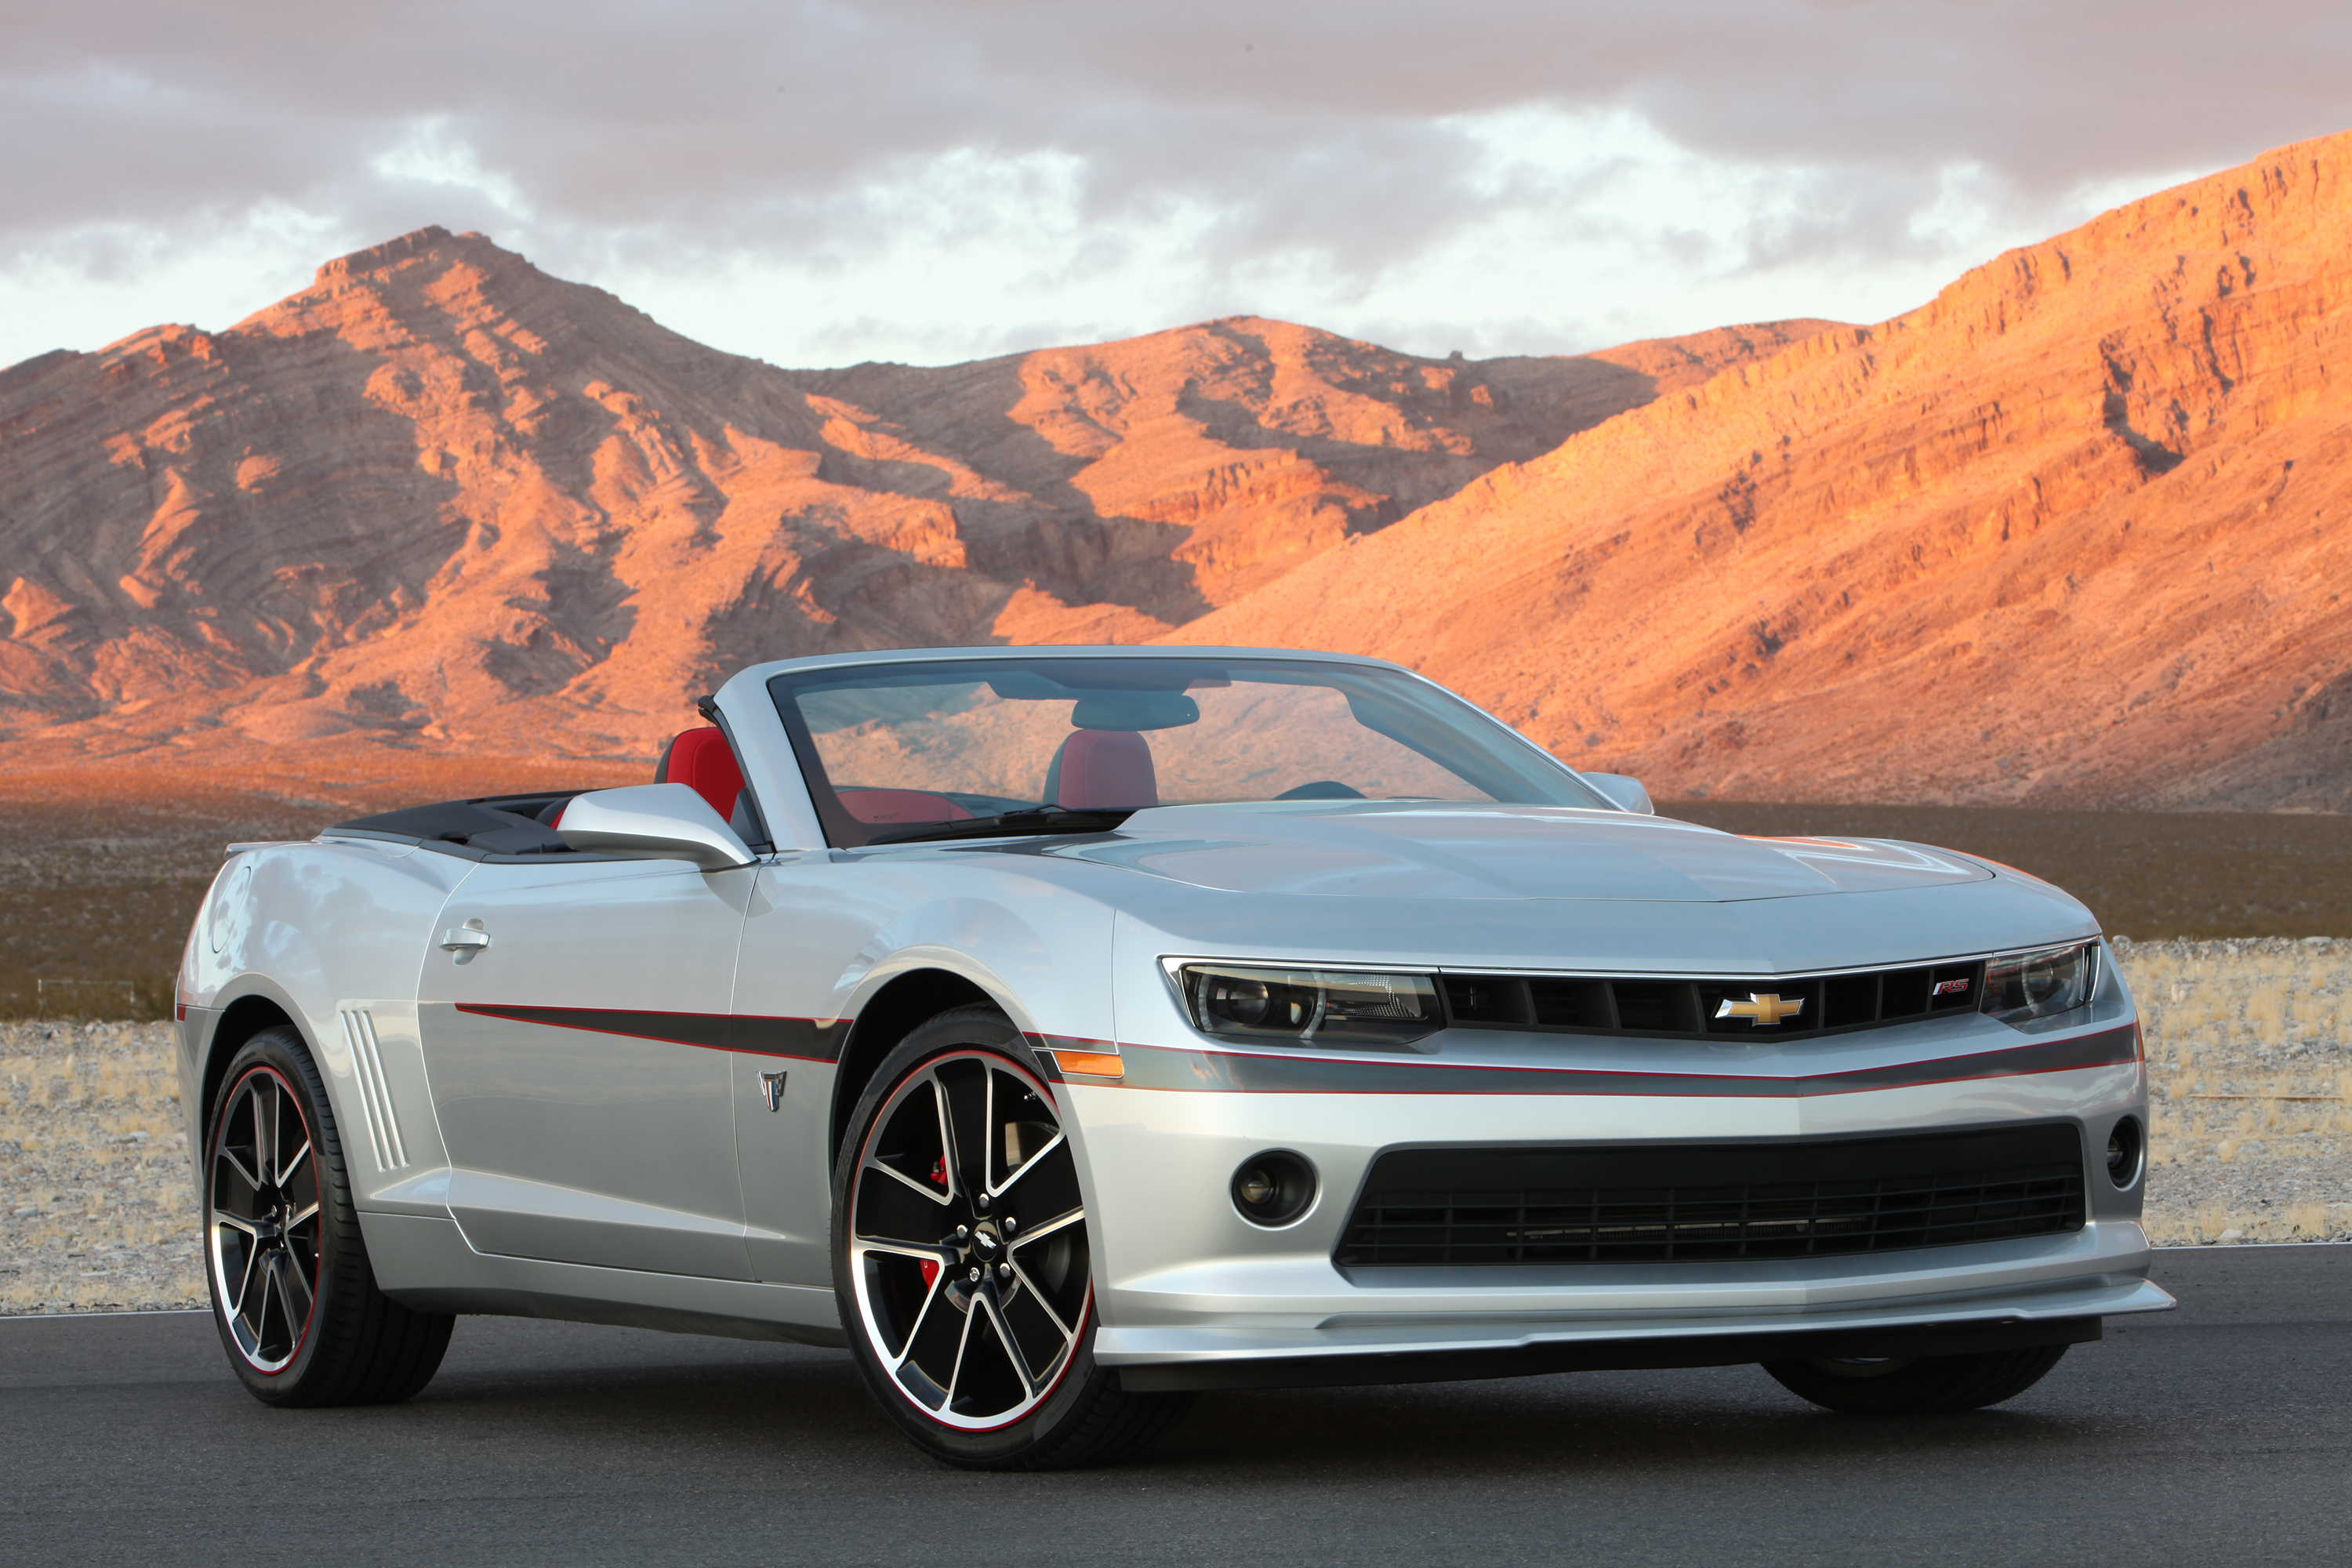 2015 Chevrolet Camaro Commemorative Edition Bows At Sema Autoevolution